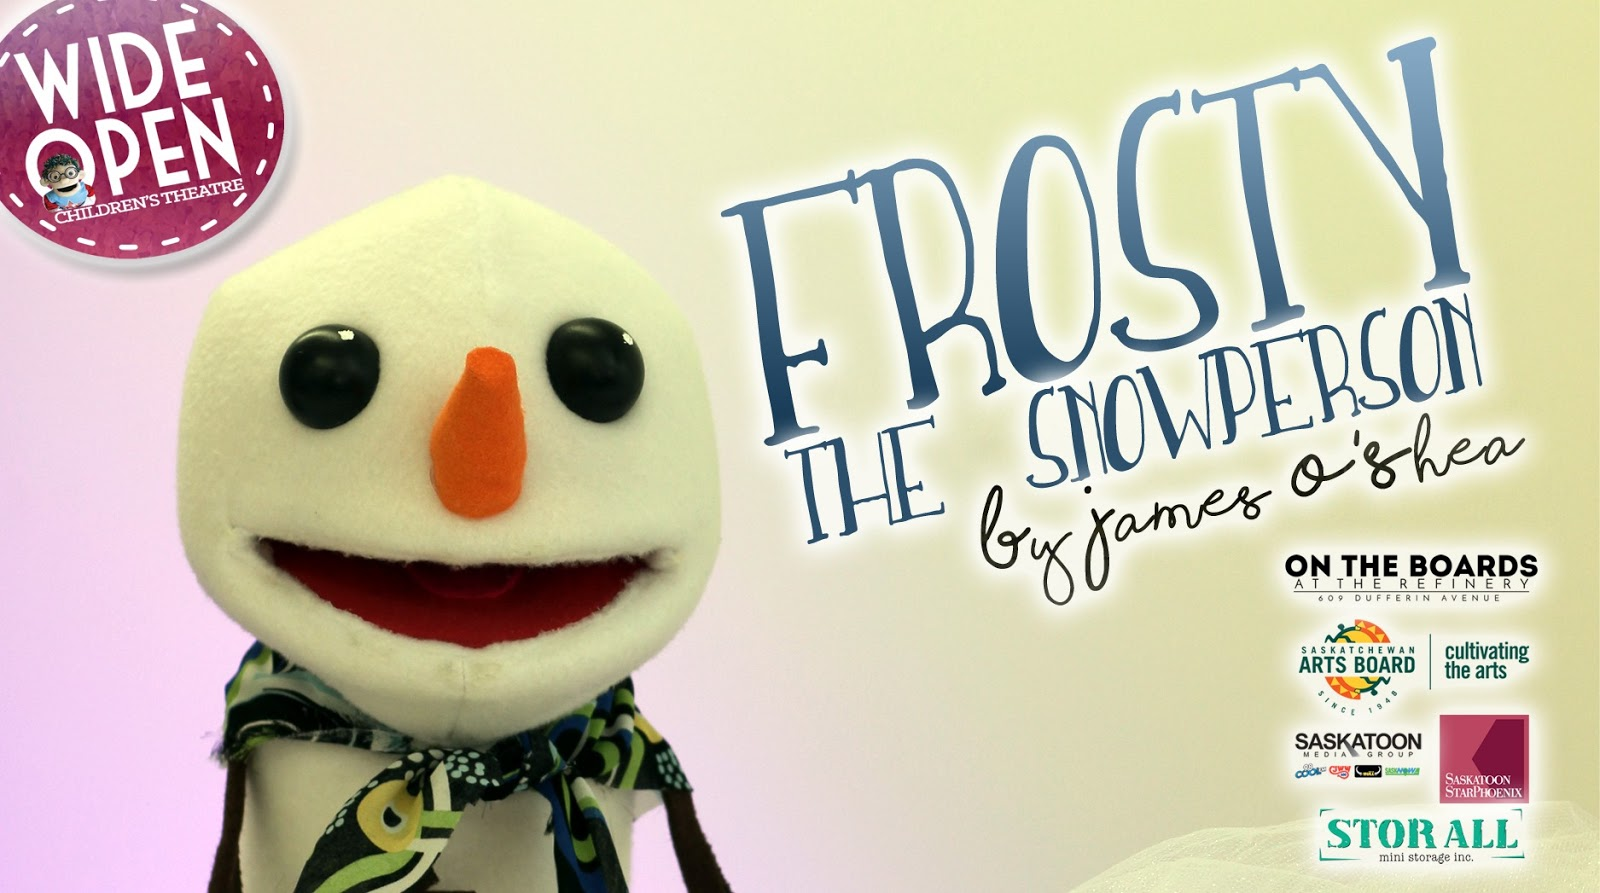 Wide Open Presents Frosty the Snow Person